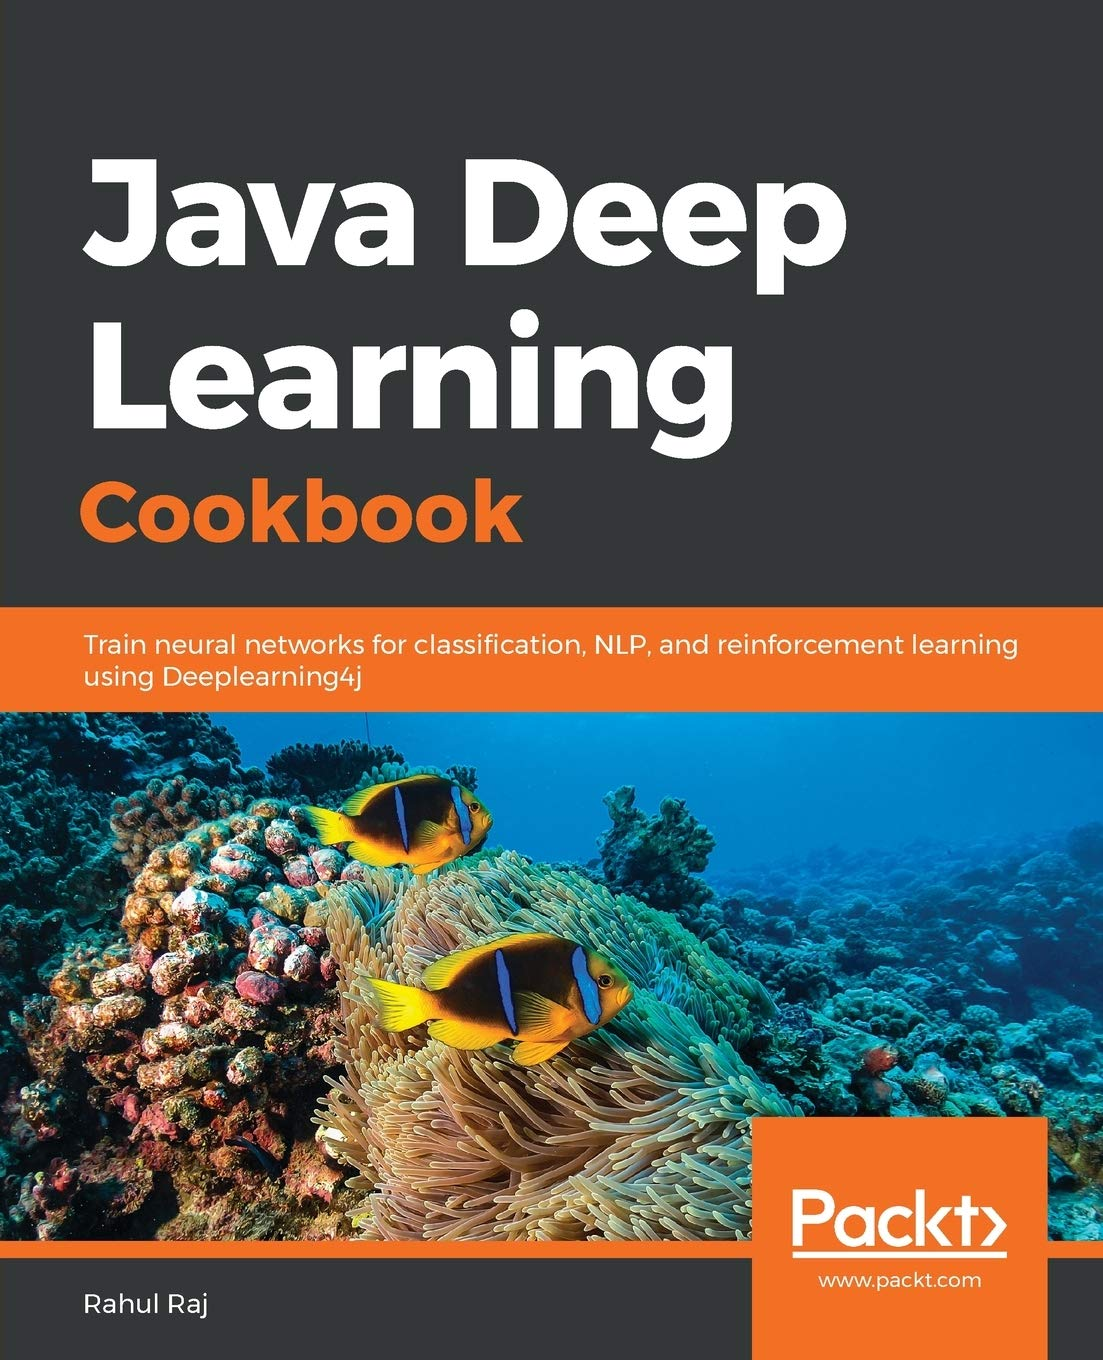 Java Deep Learning Cookbook  Train Neural Networks For Classification NLP And Reinforcement Learning Using Deeplearning4j